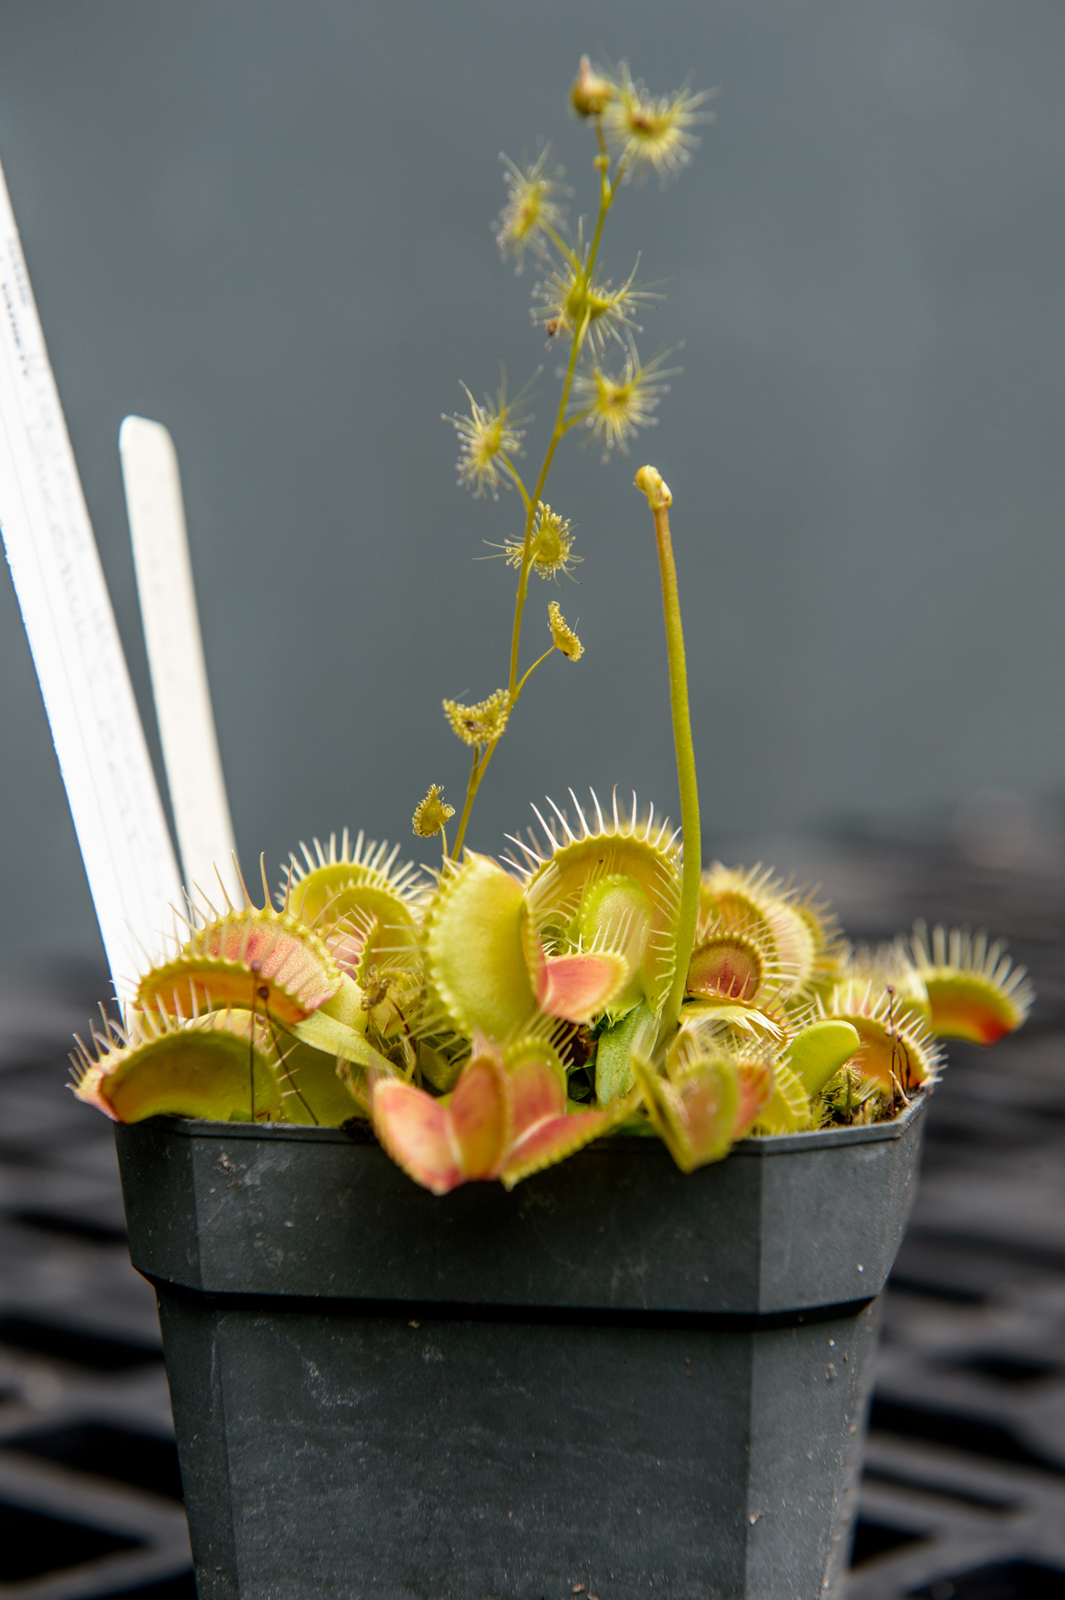 Fantastic Flesh-Eating Plants